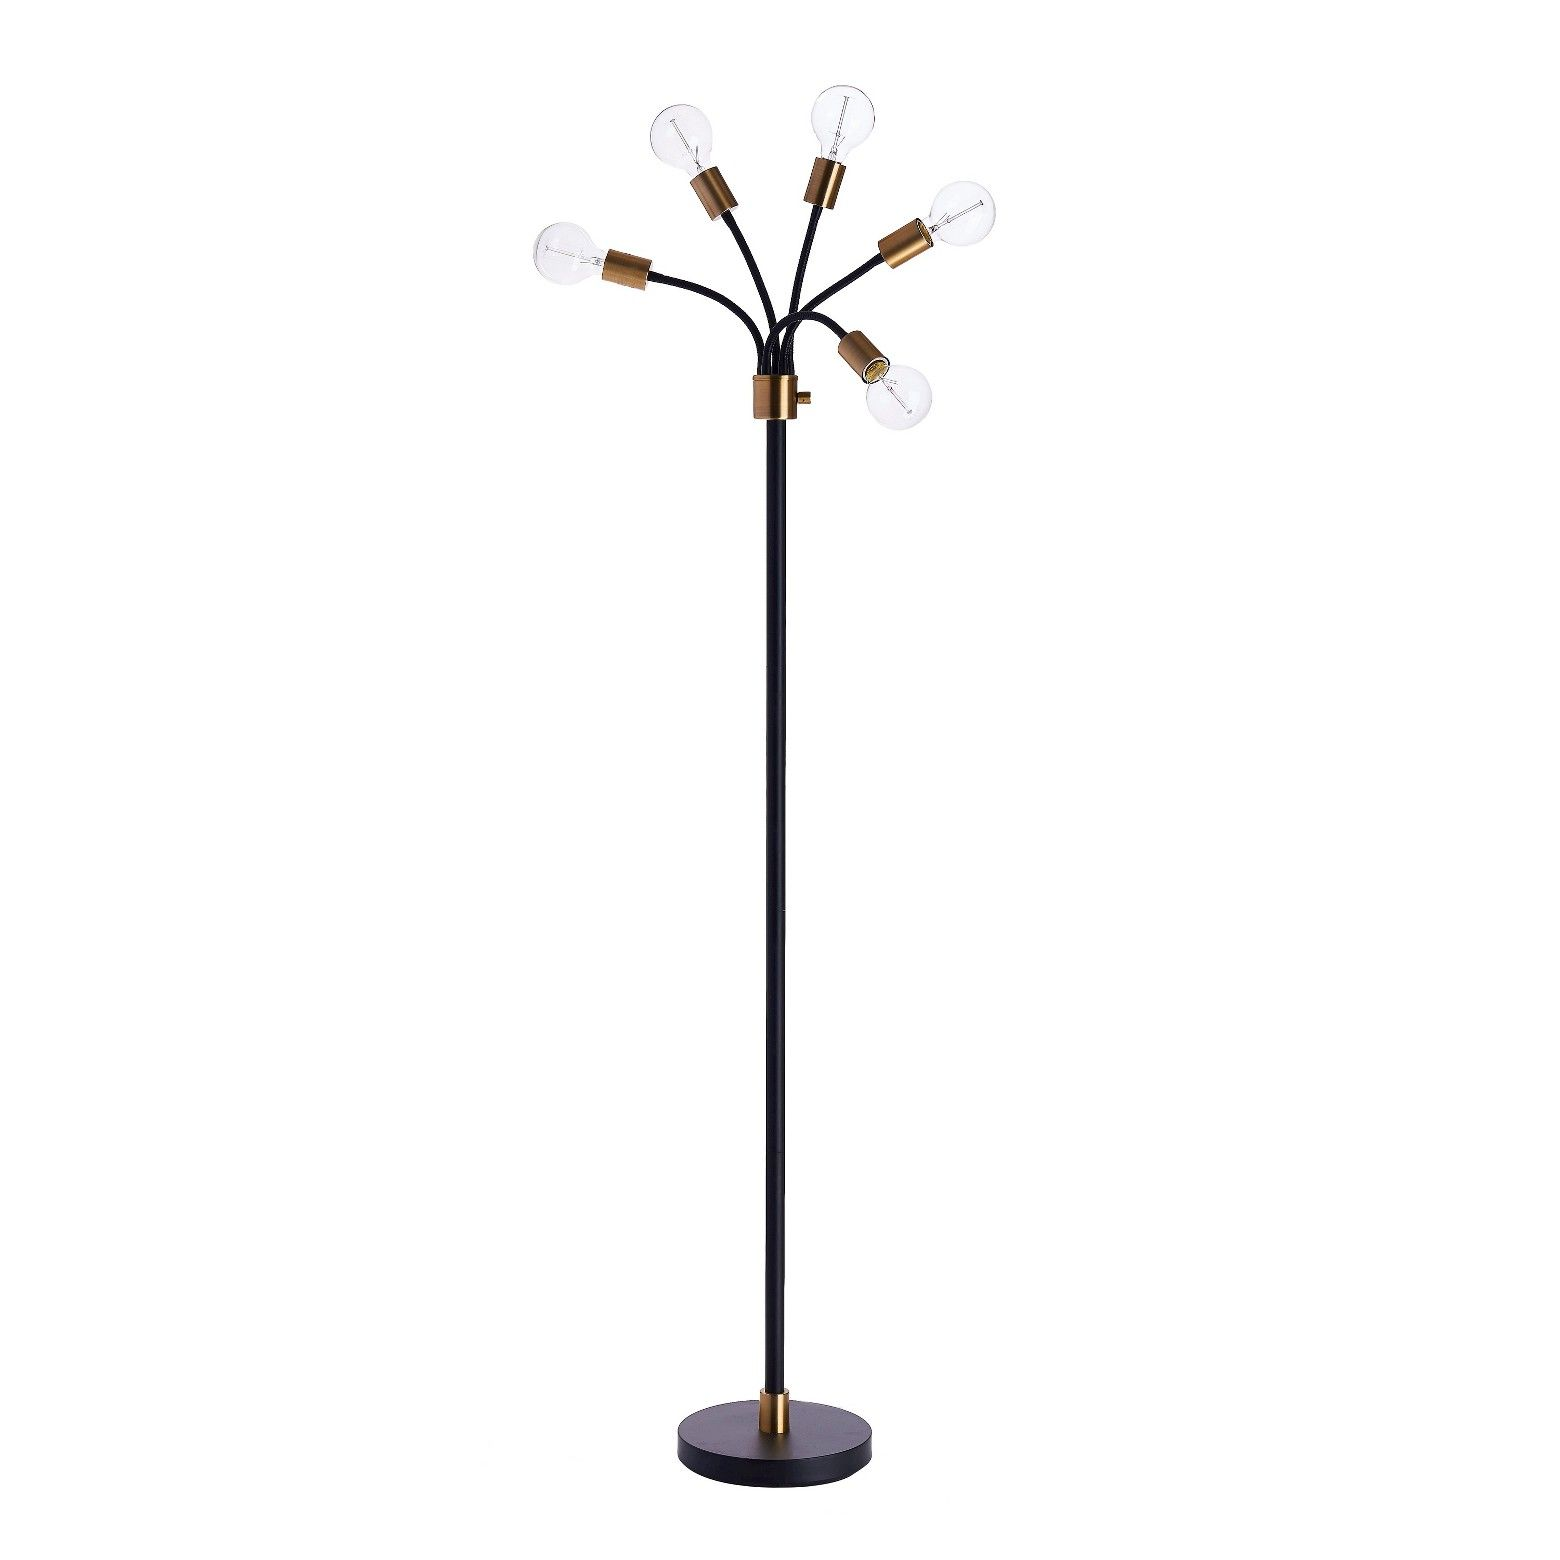 Exposed Bulb Multi Head Floor Lamp Brass Includes Energy Efficient Light Bulb Project 62 Energy Efficient Light Bulbs Flexible Floor Lamp Brass Floor Lamp